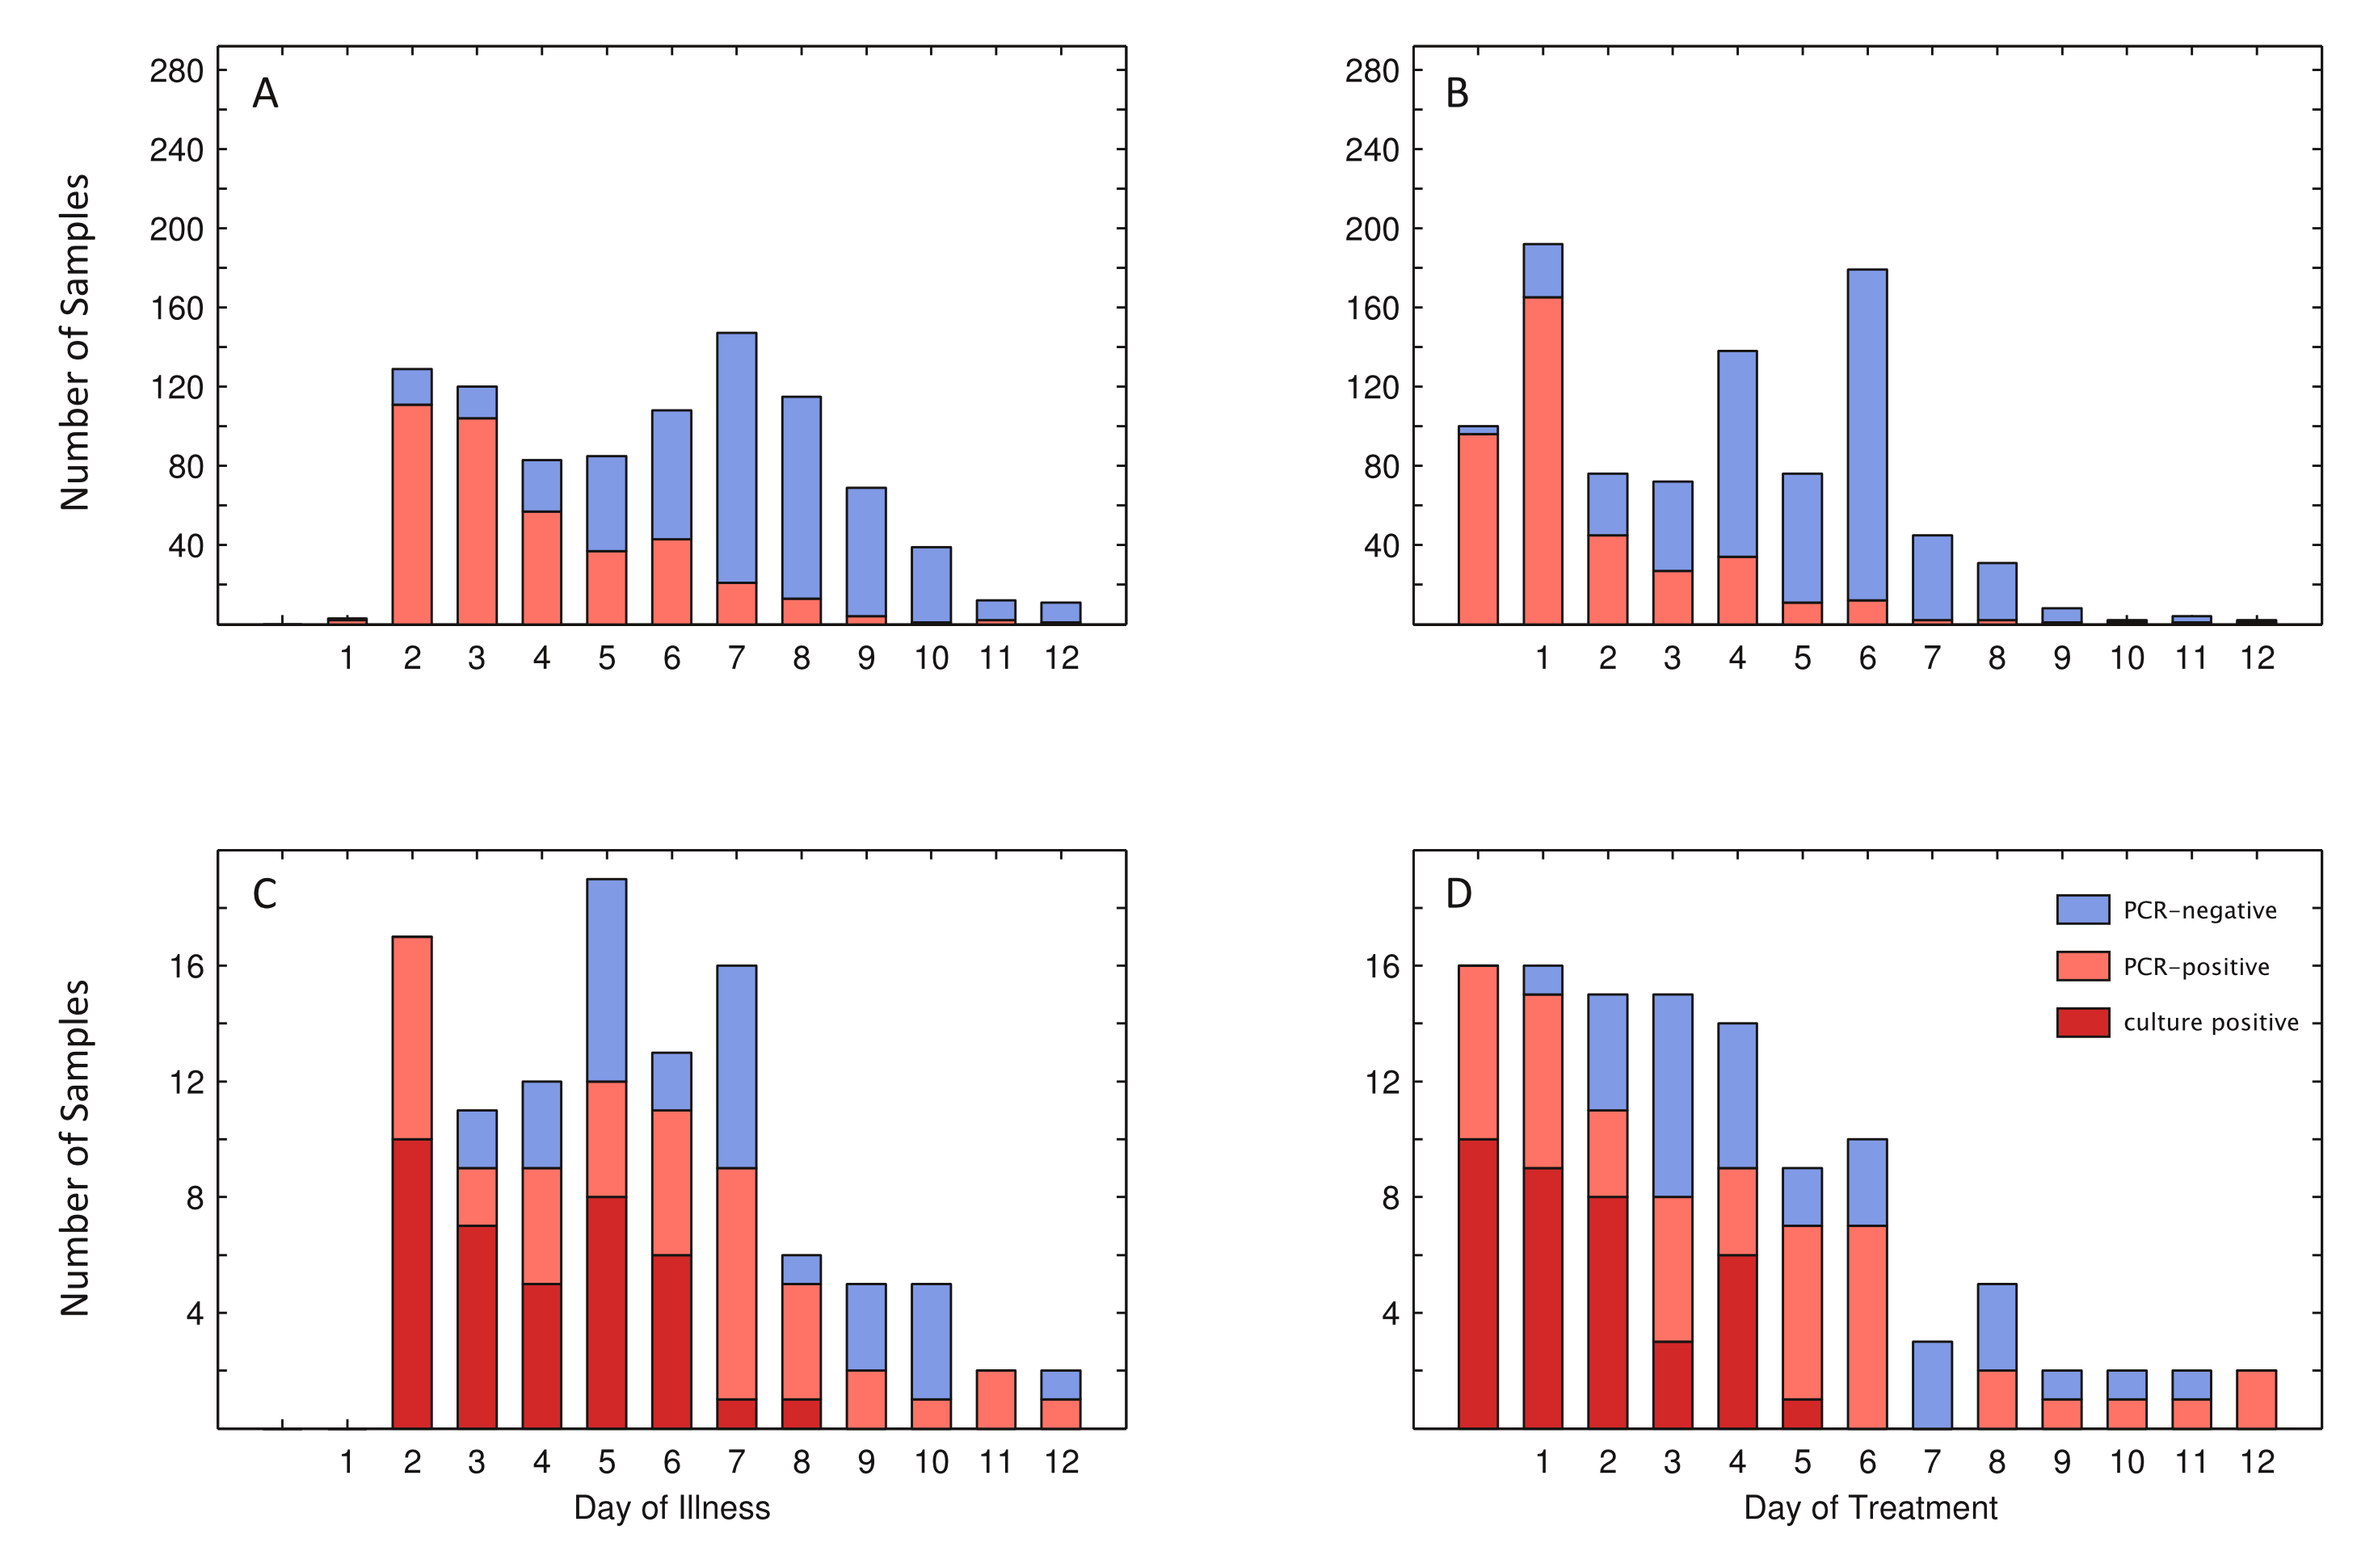 RT-PCR and culture results related to day of illness or treatment.